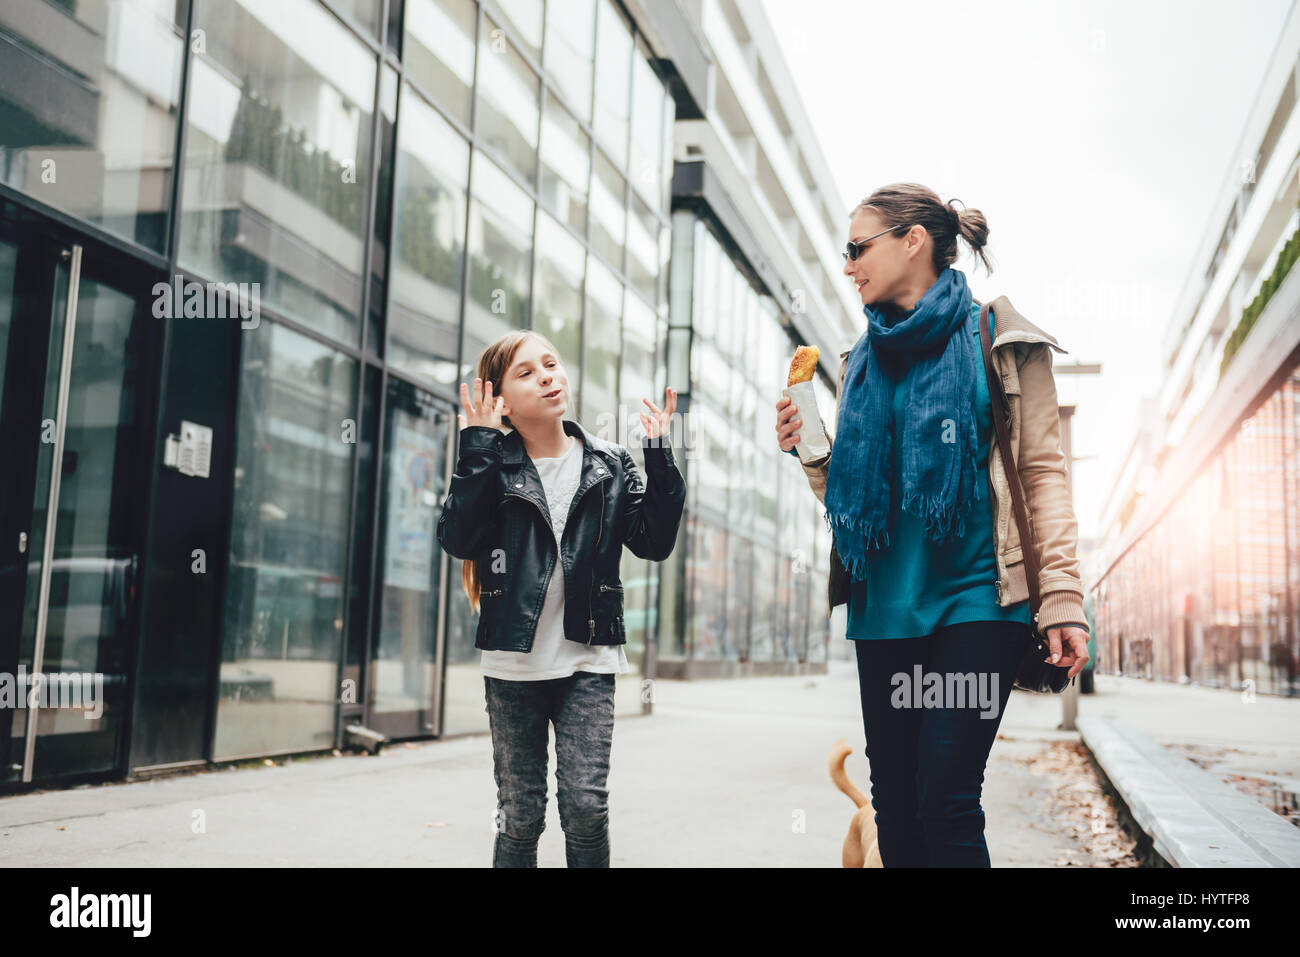 Mother and daughter walking down the city streets and eating sandwich - Stock Image